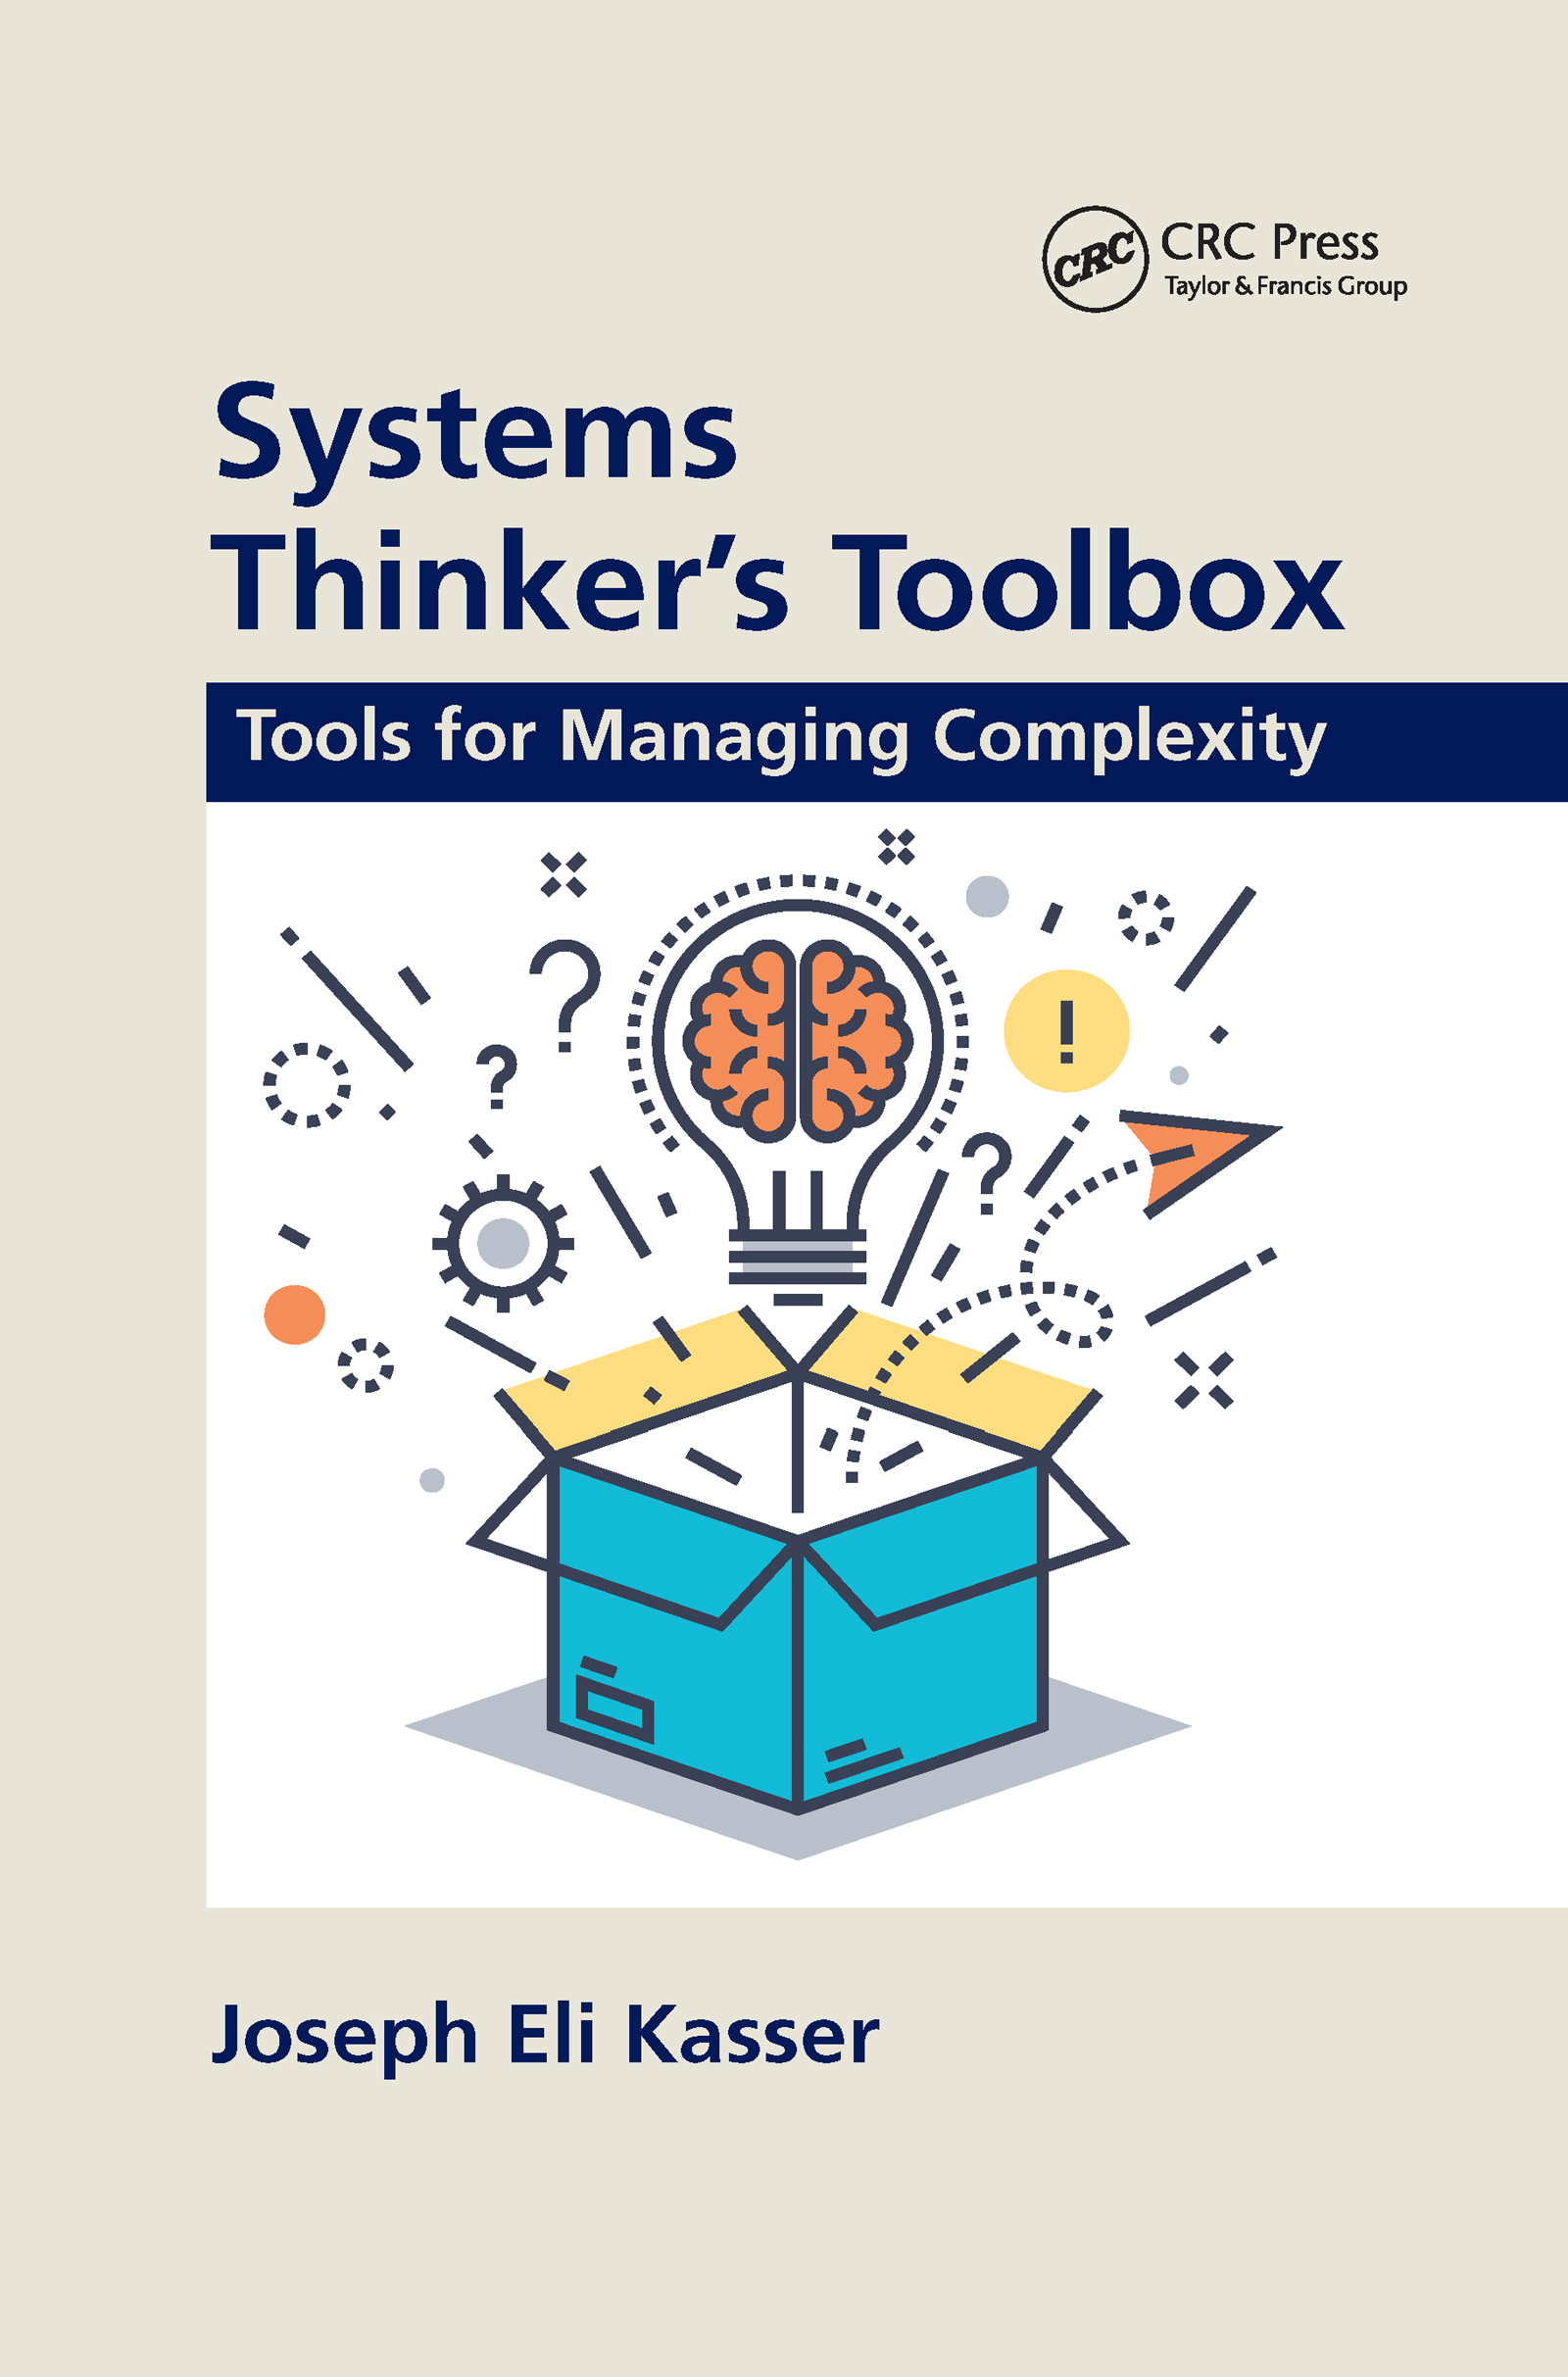 Systems Thinker's Toolbox